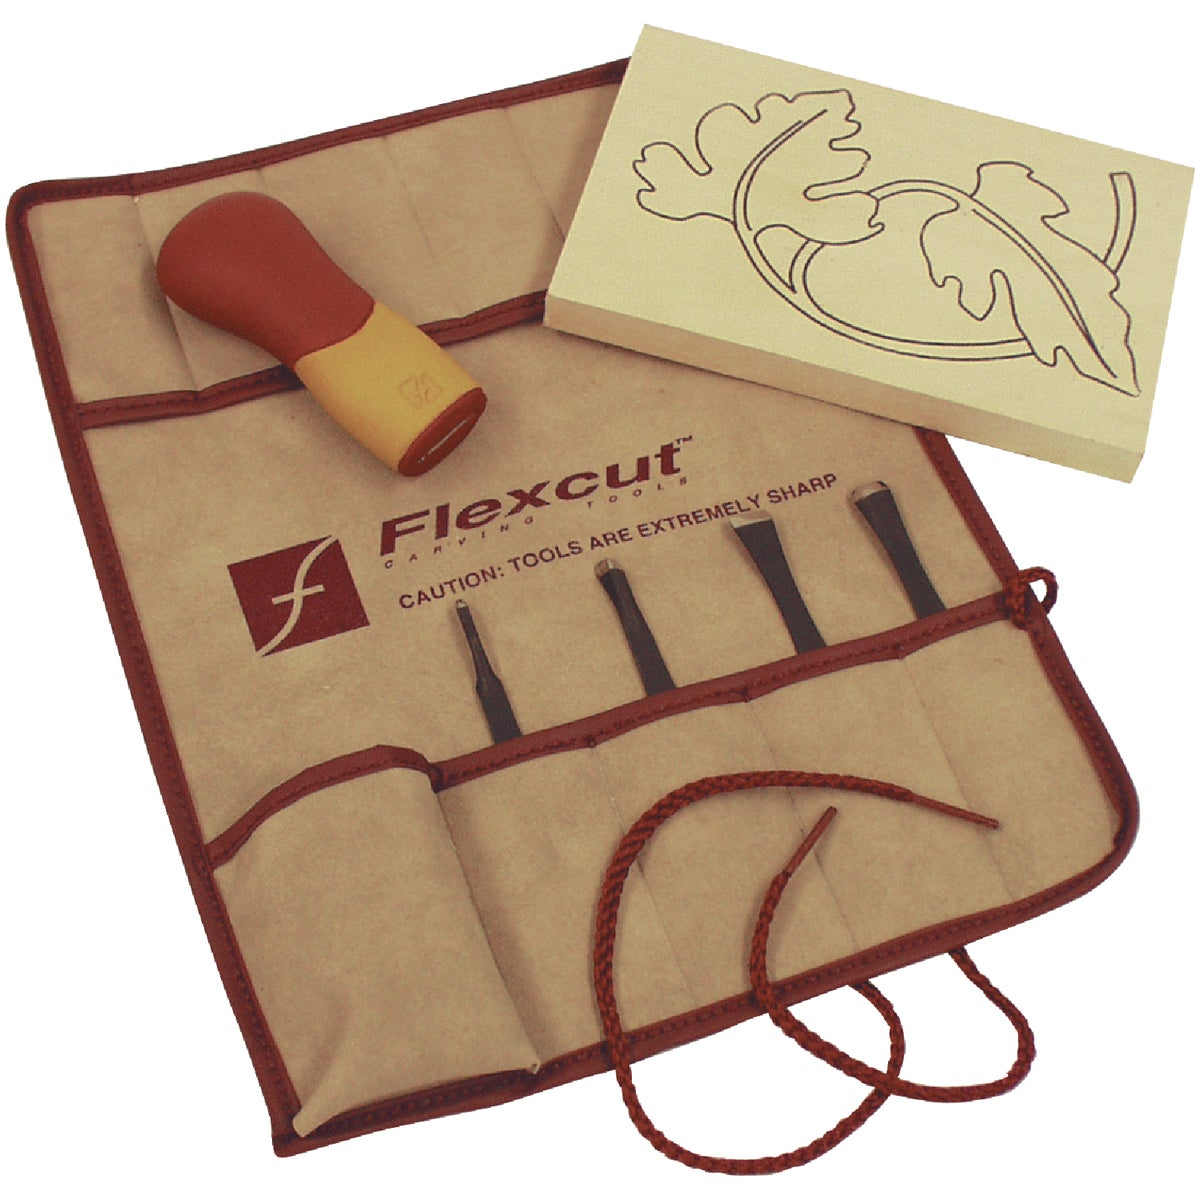 CRAFT CARVER KIT - SK106 by Flexcut Tool Co